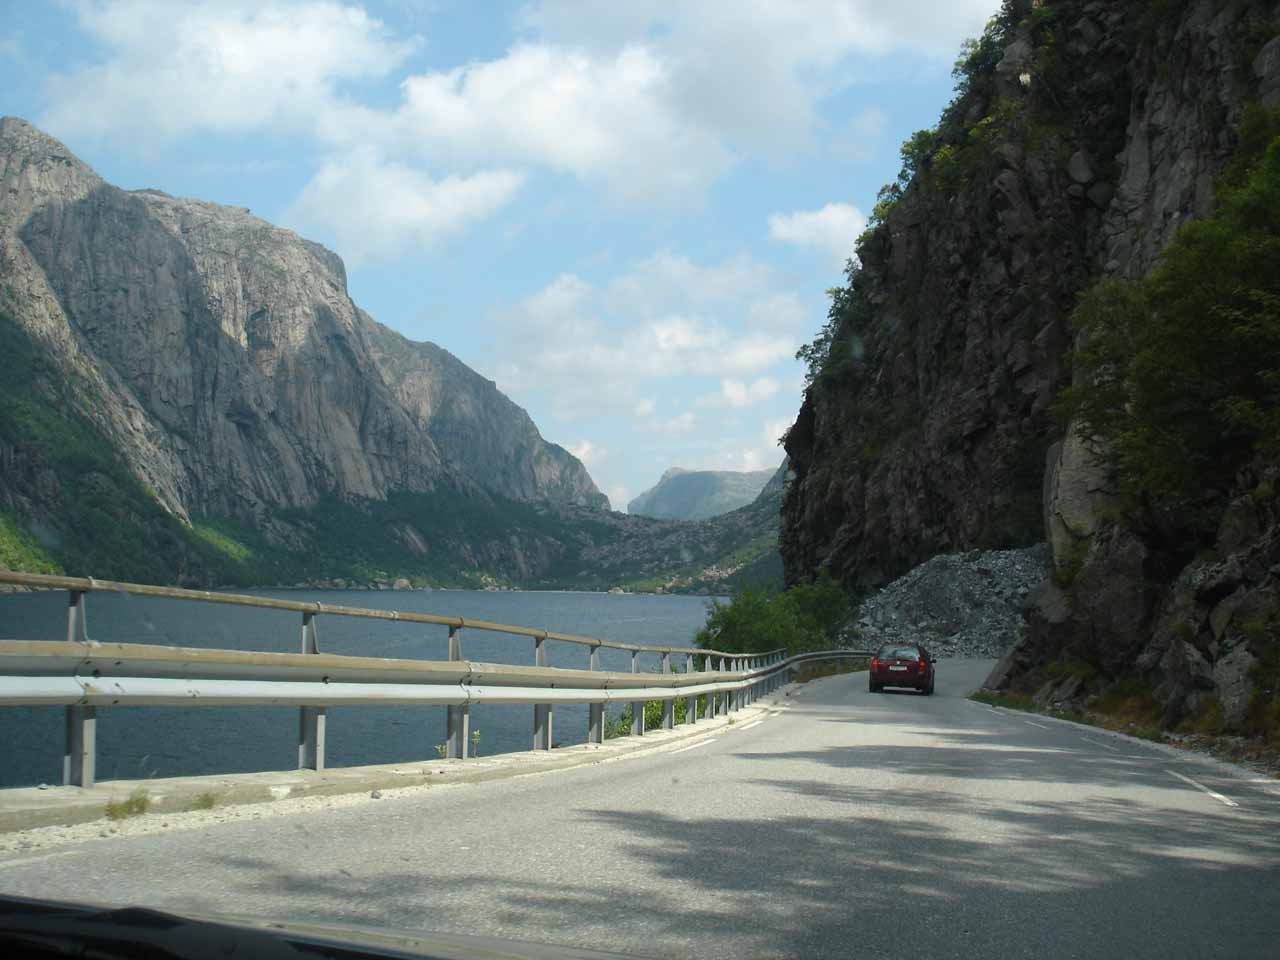 While on the county road along Frafjorden, we were driving narrower roads than what we were used to back at home